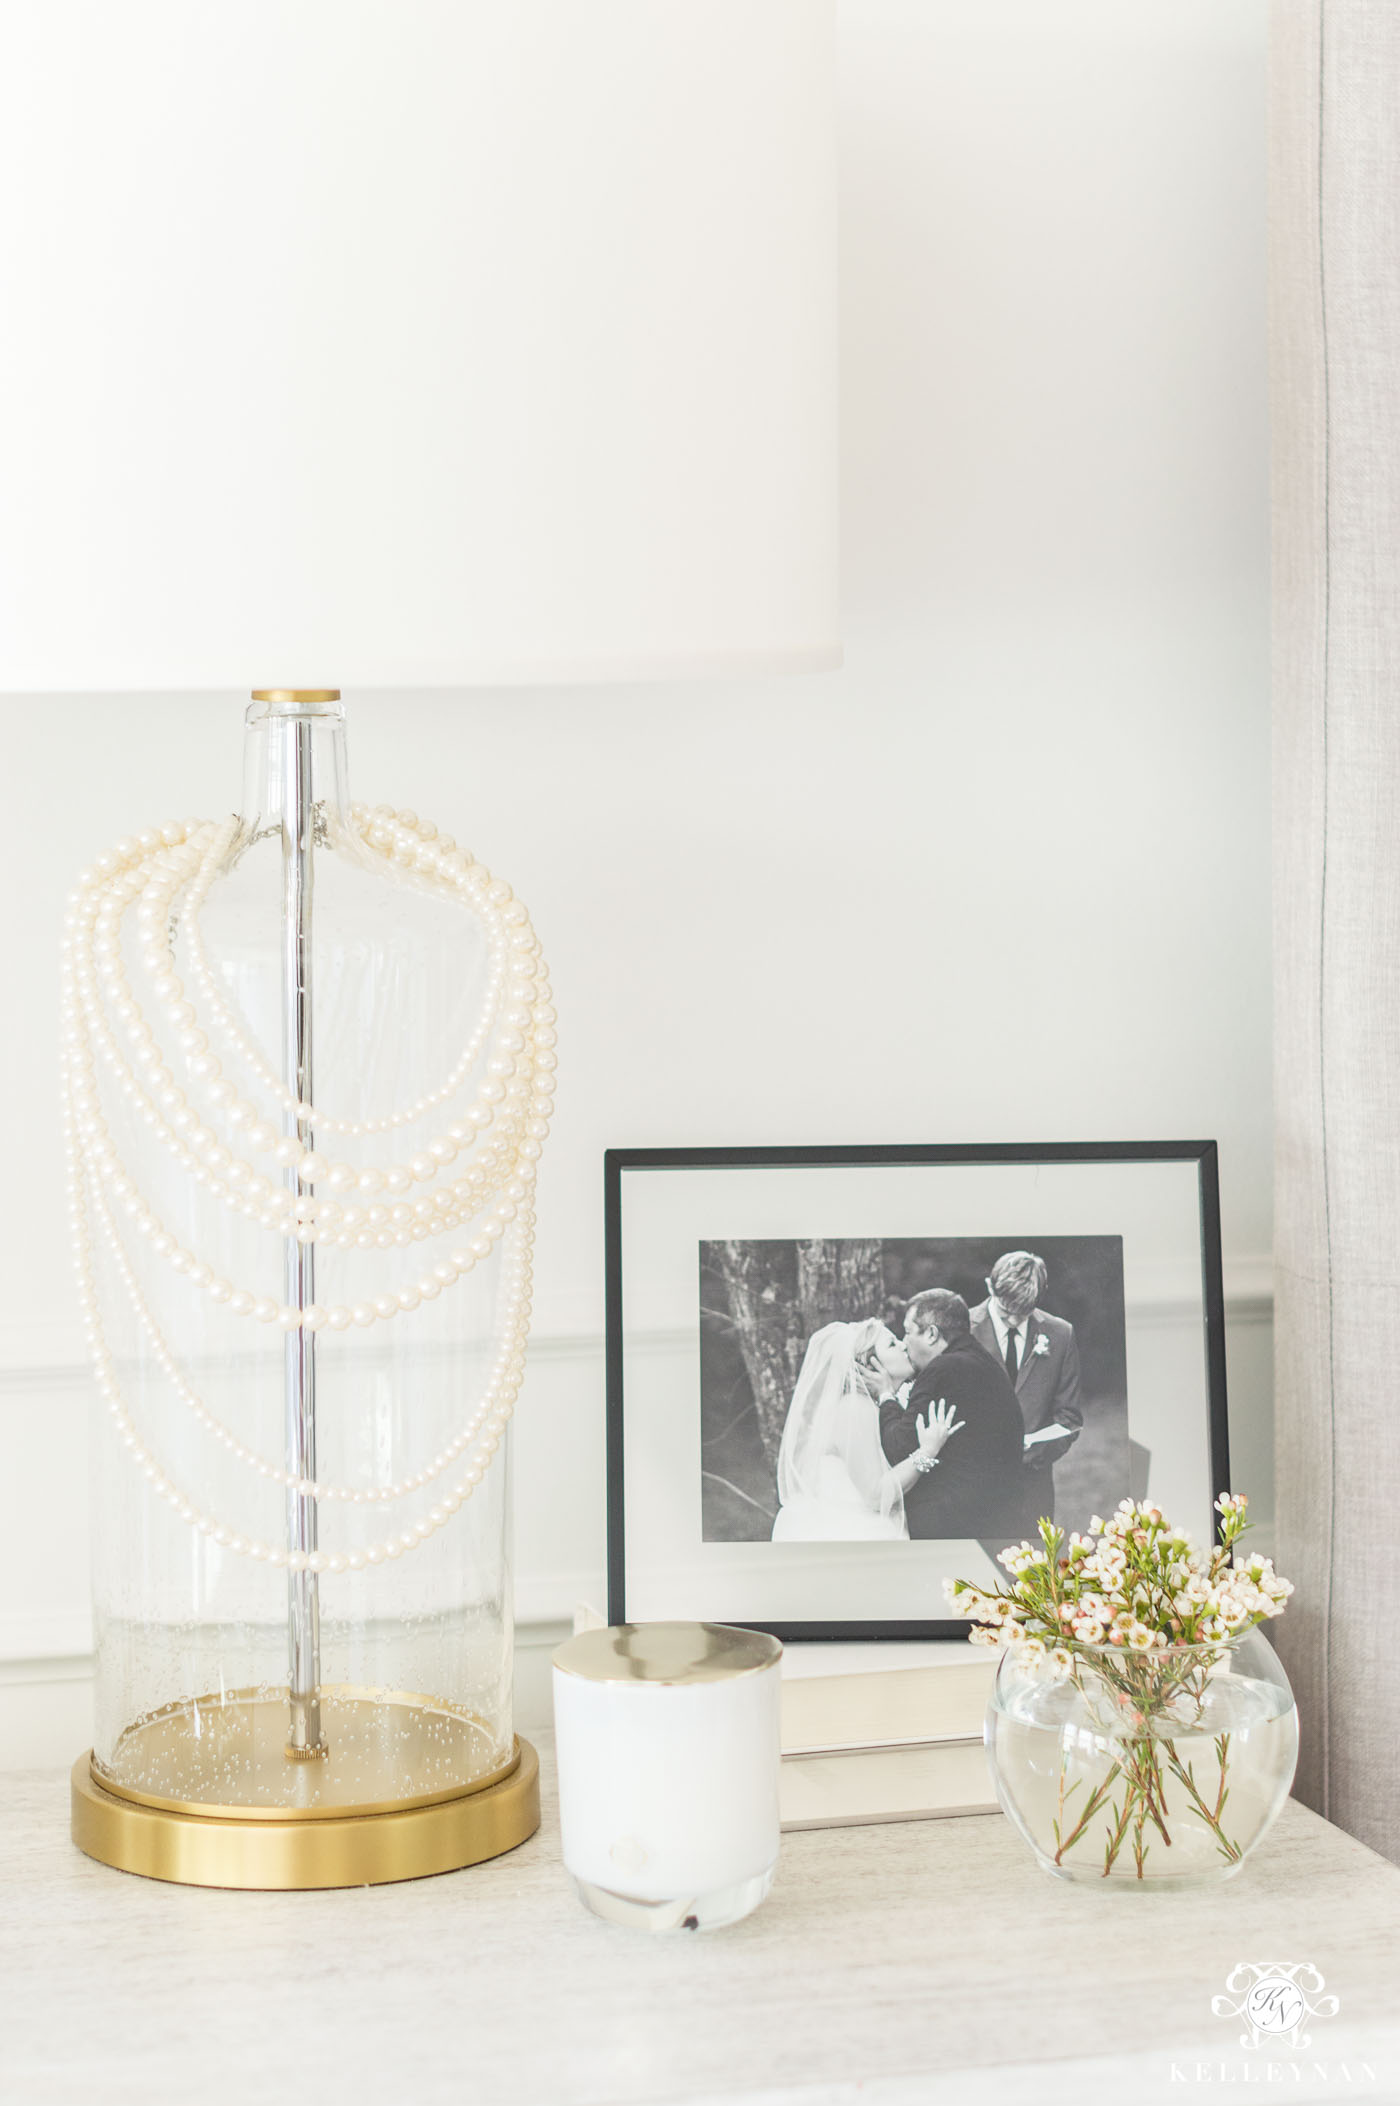 Strands of pearls on a bedside lamp